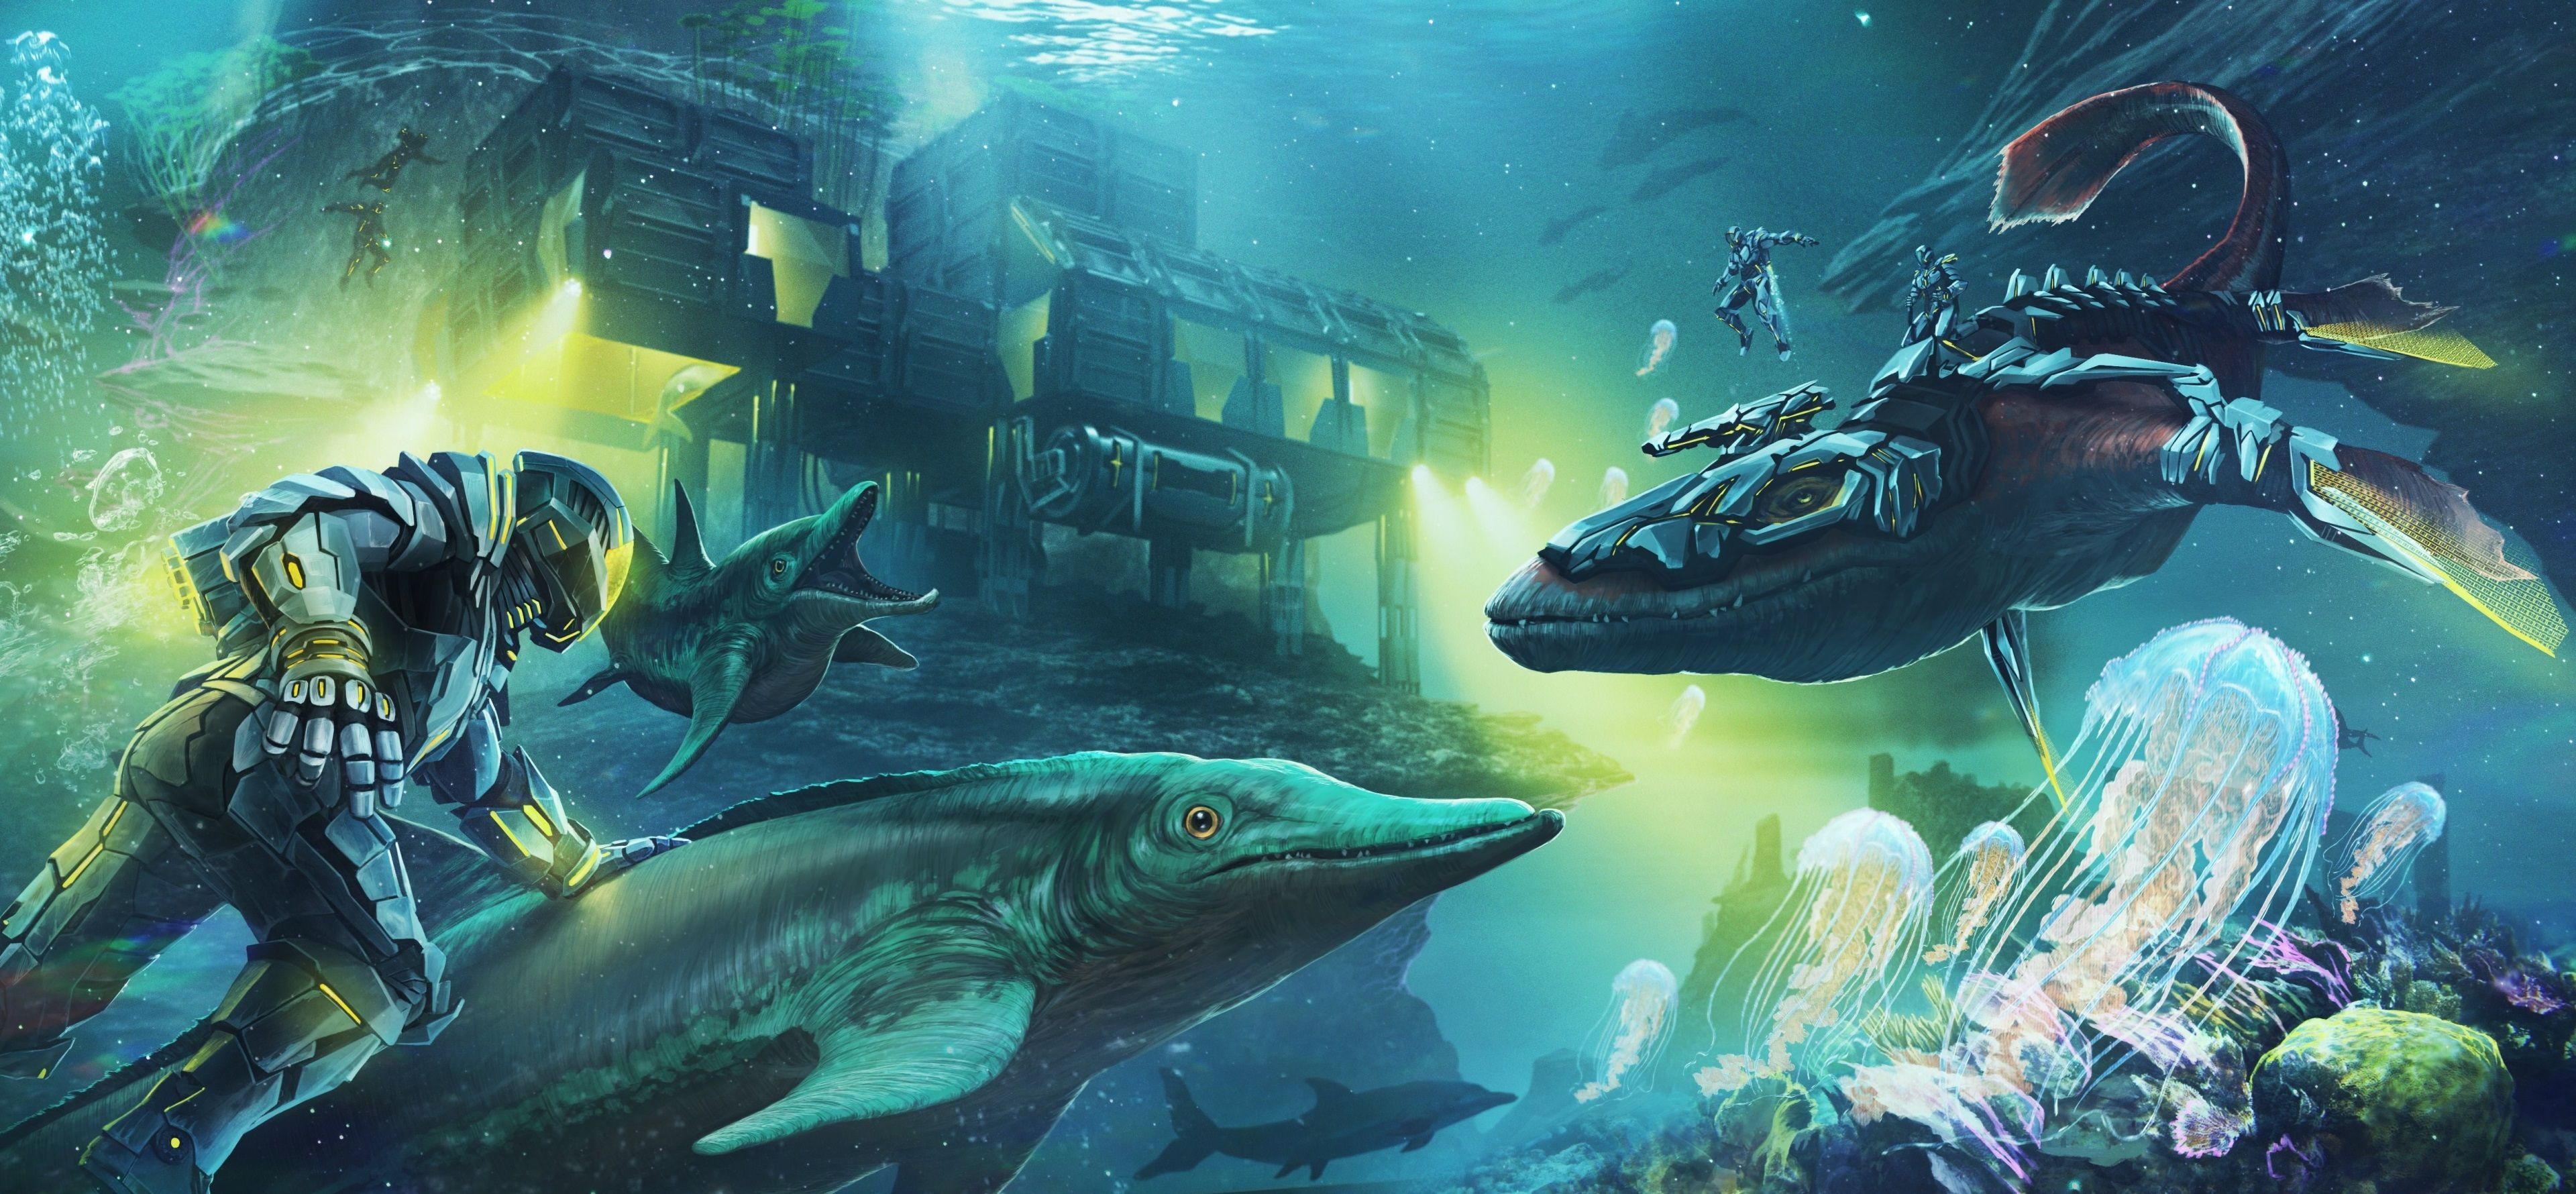 3840x1780 Ark Survival Evolved 4k Windows Background